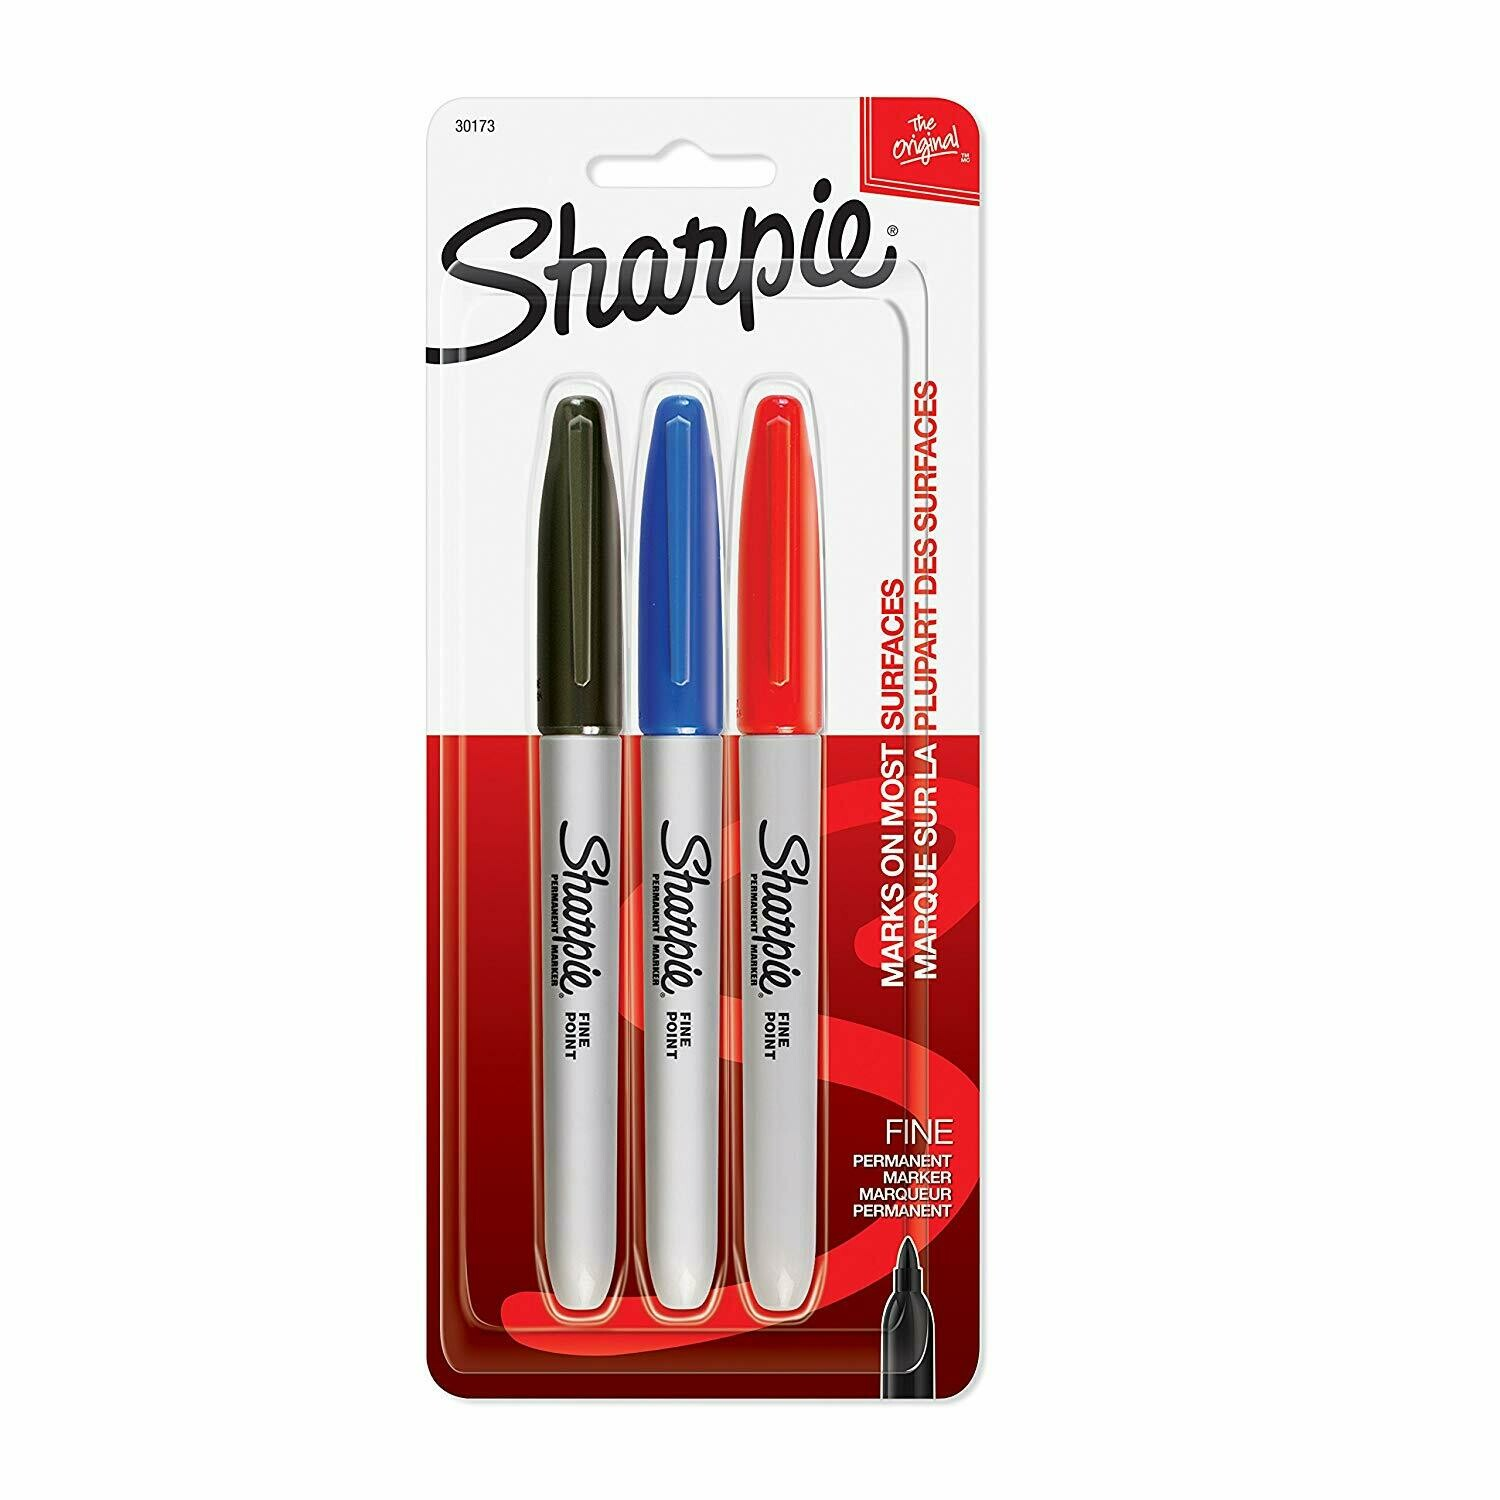 Sharpie / Permanent Markers, Fine Point, Assorted Colors, 3 Markers